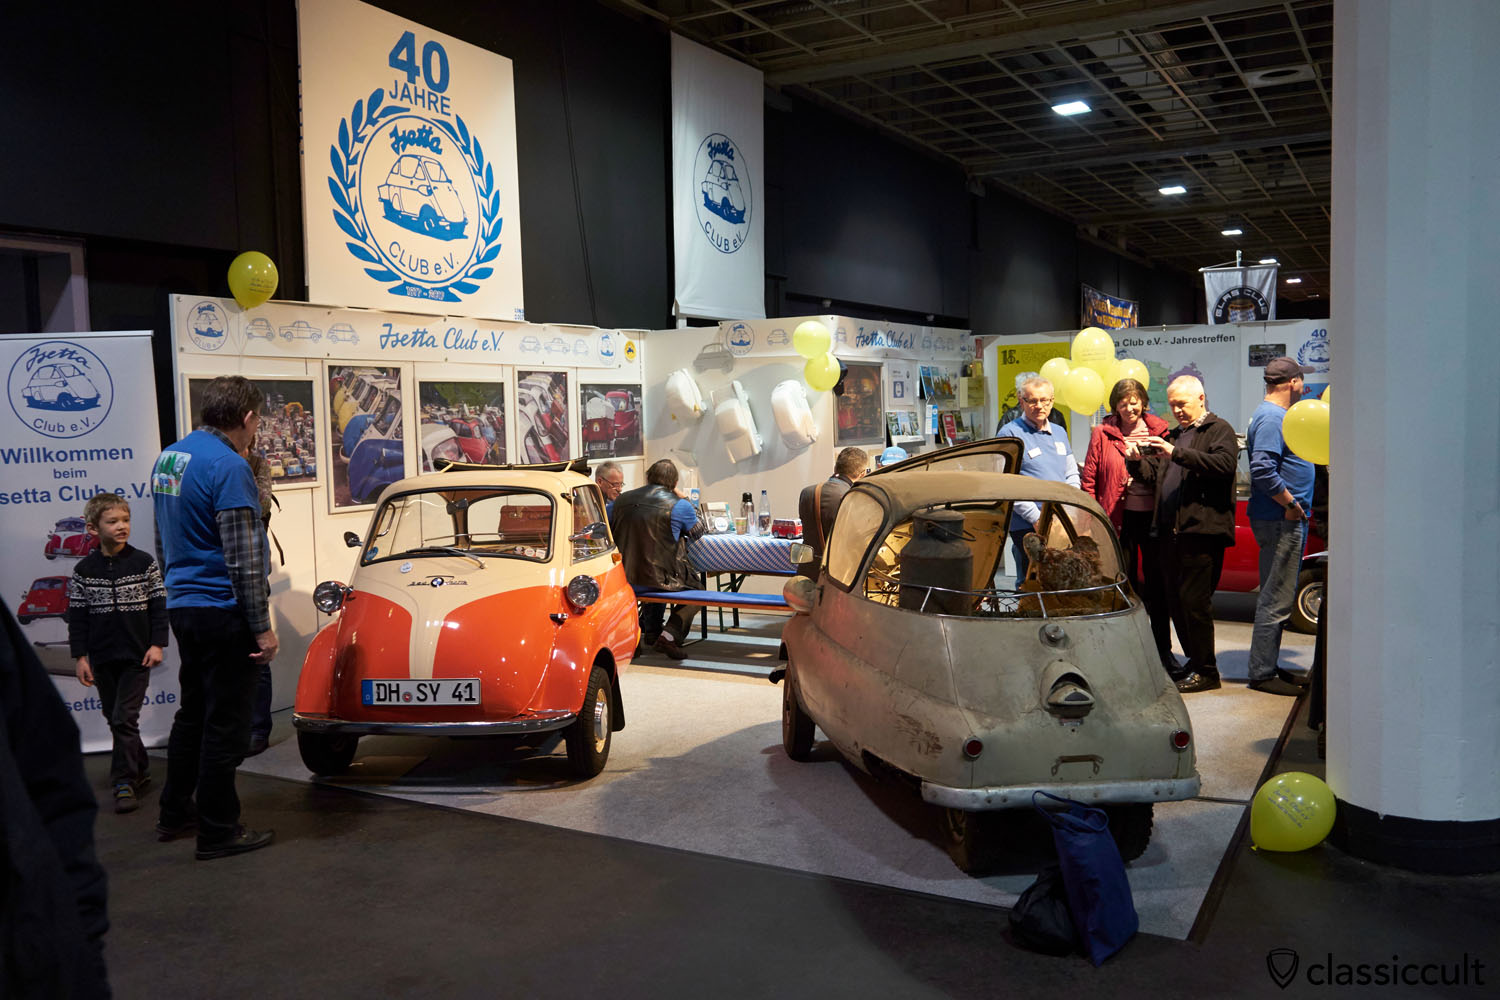 40 years BMW Isetta Club 1977-2017